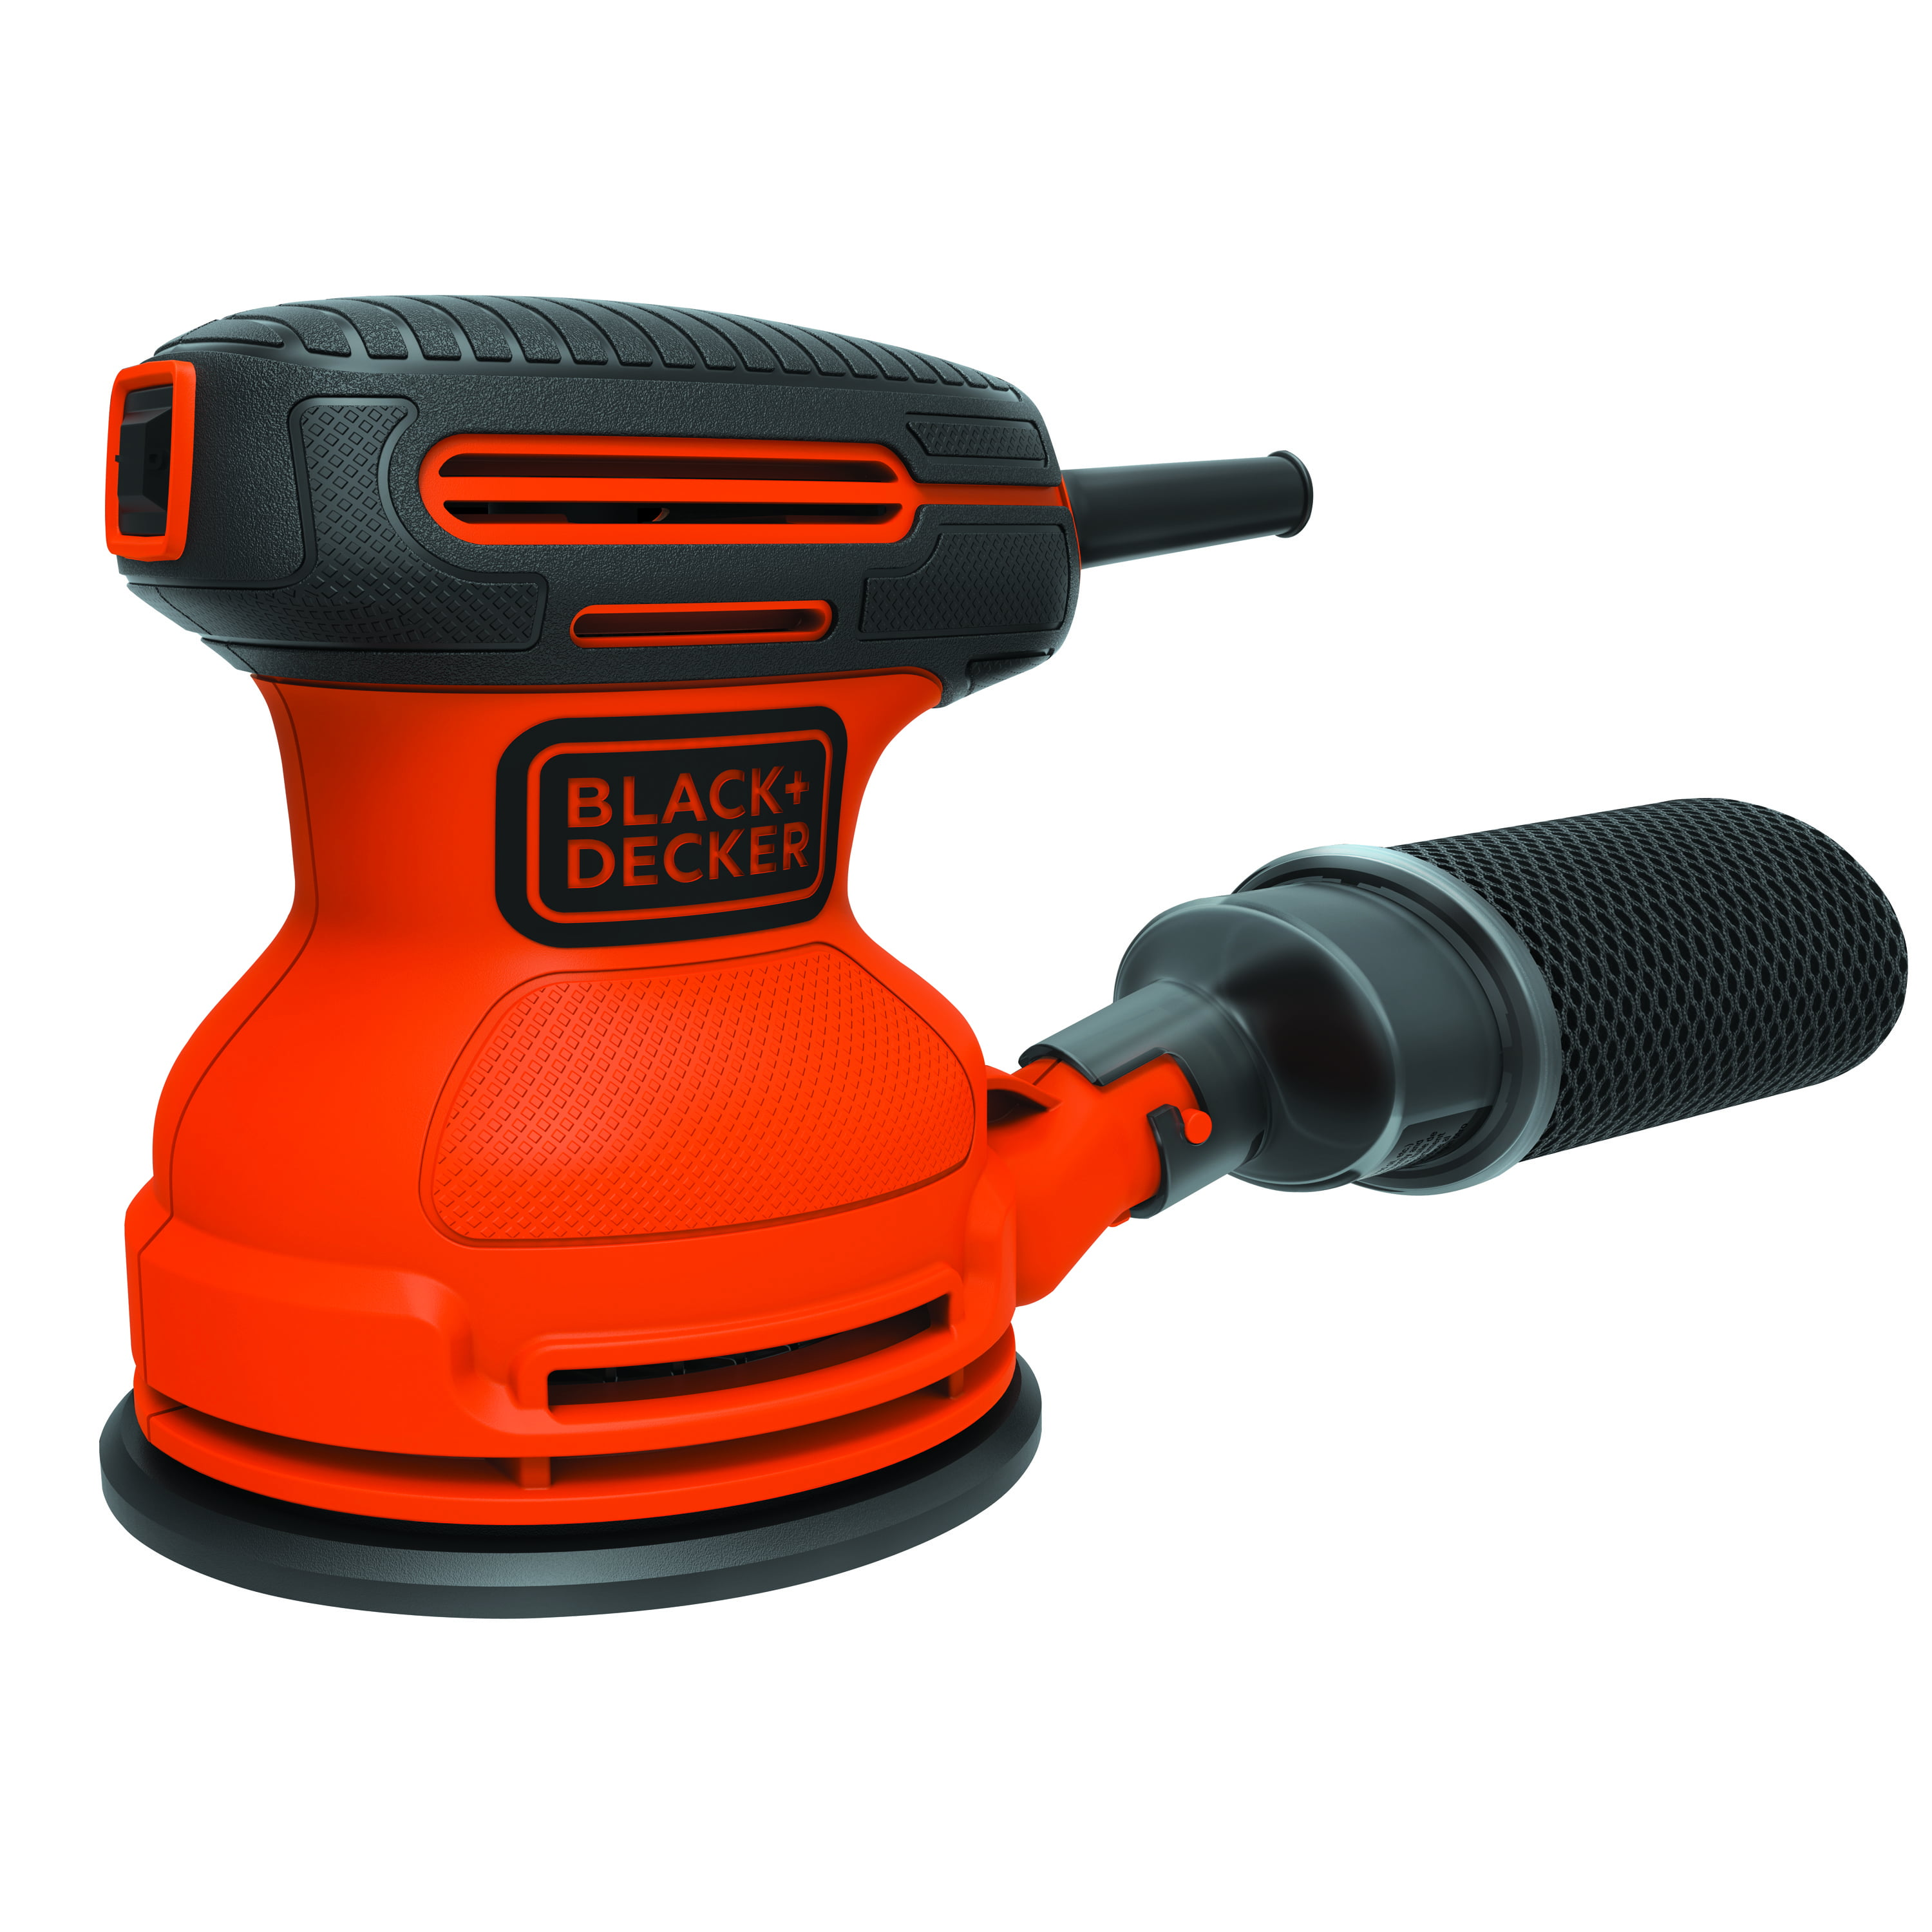 Black & Decker BDERO100 5 in. Random Orbital Sander by Stanley Black & Decker